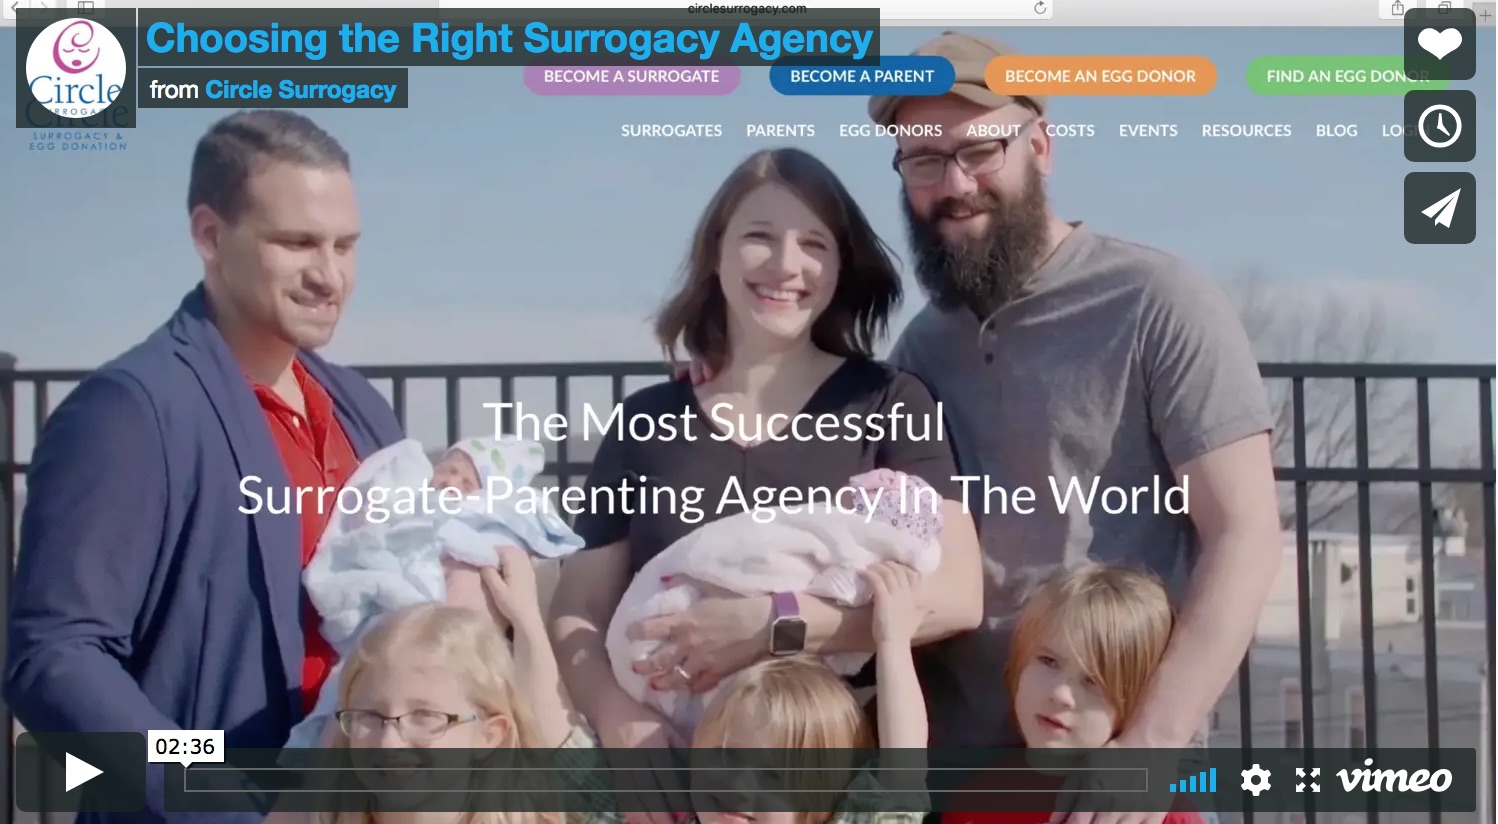 Become a surrogate How to choose a surrogacy agency